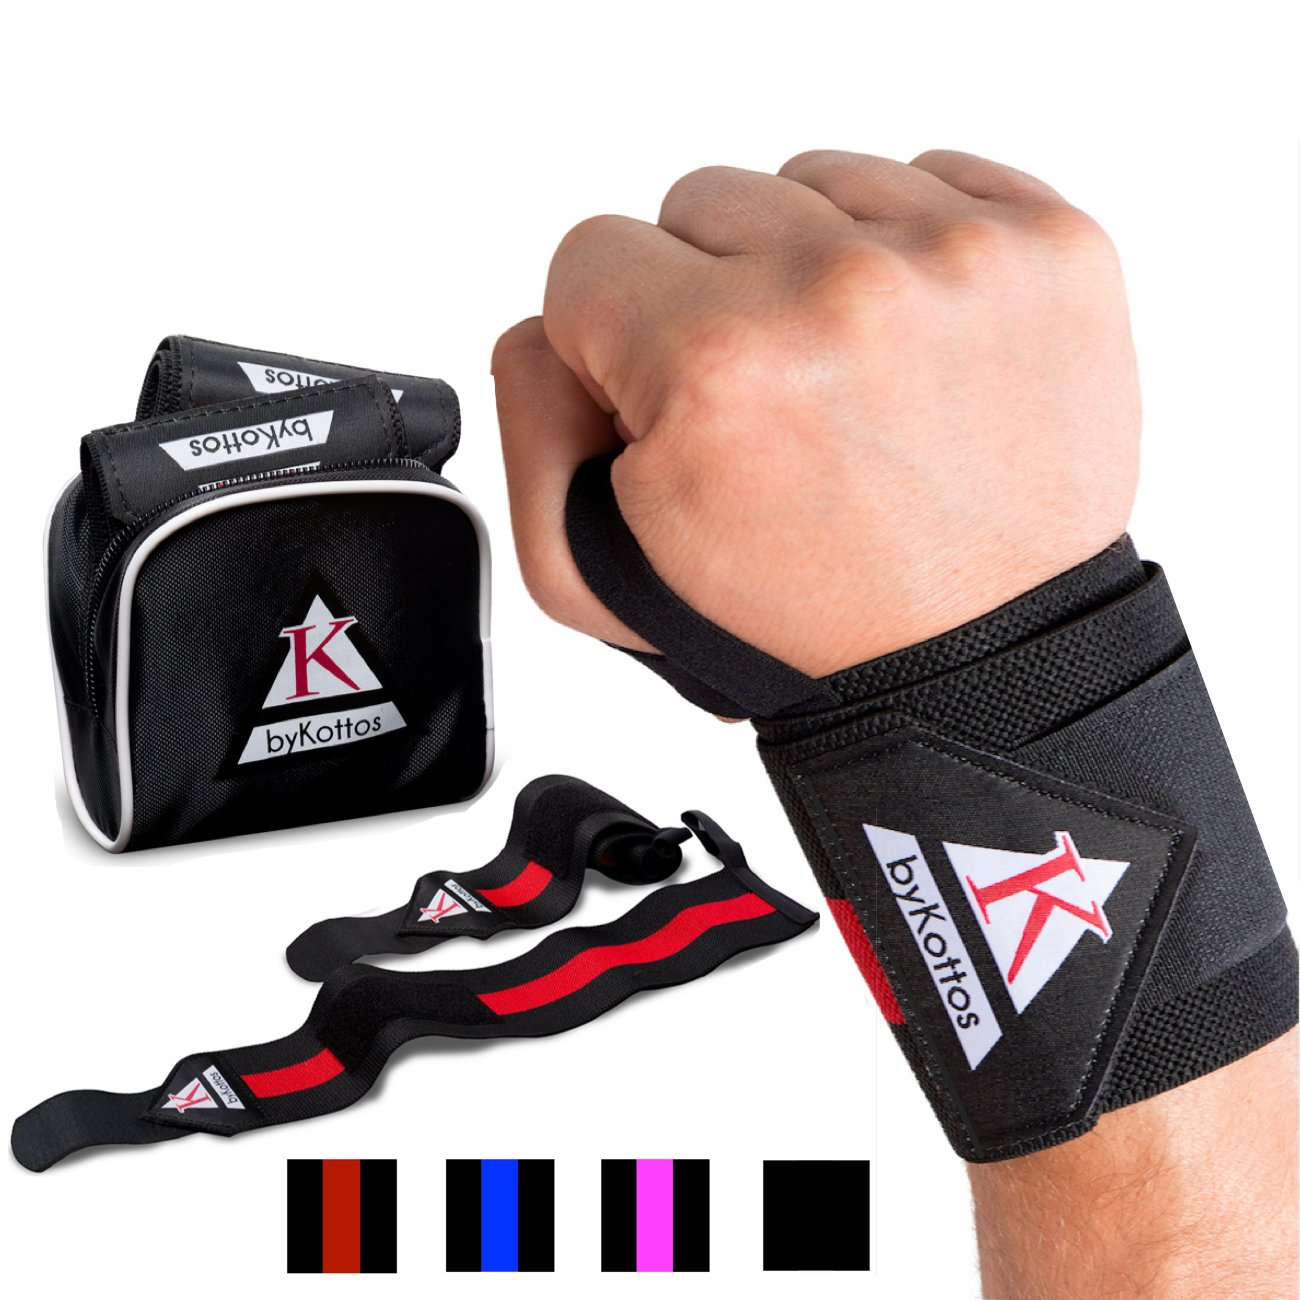 BYKOTTOS Red Wrist Wraps Weightlifting, Powerlifting Straps, Crossfit Wrist Support, Weight Lifting, Workout Wrist Braces, Wrist Wraps for Men and Women